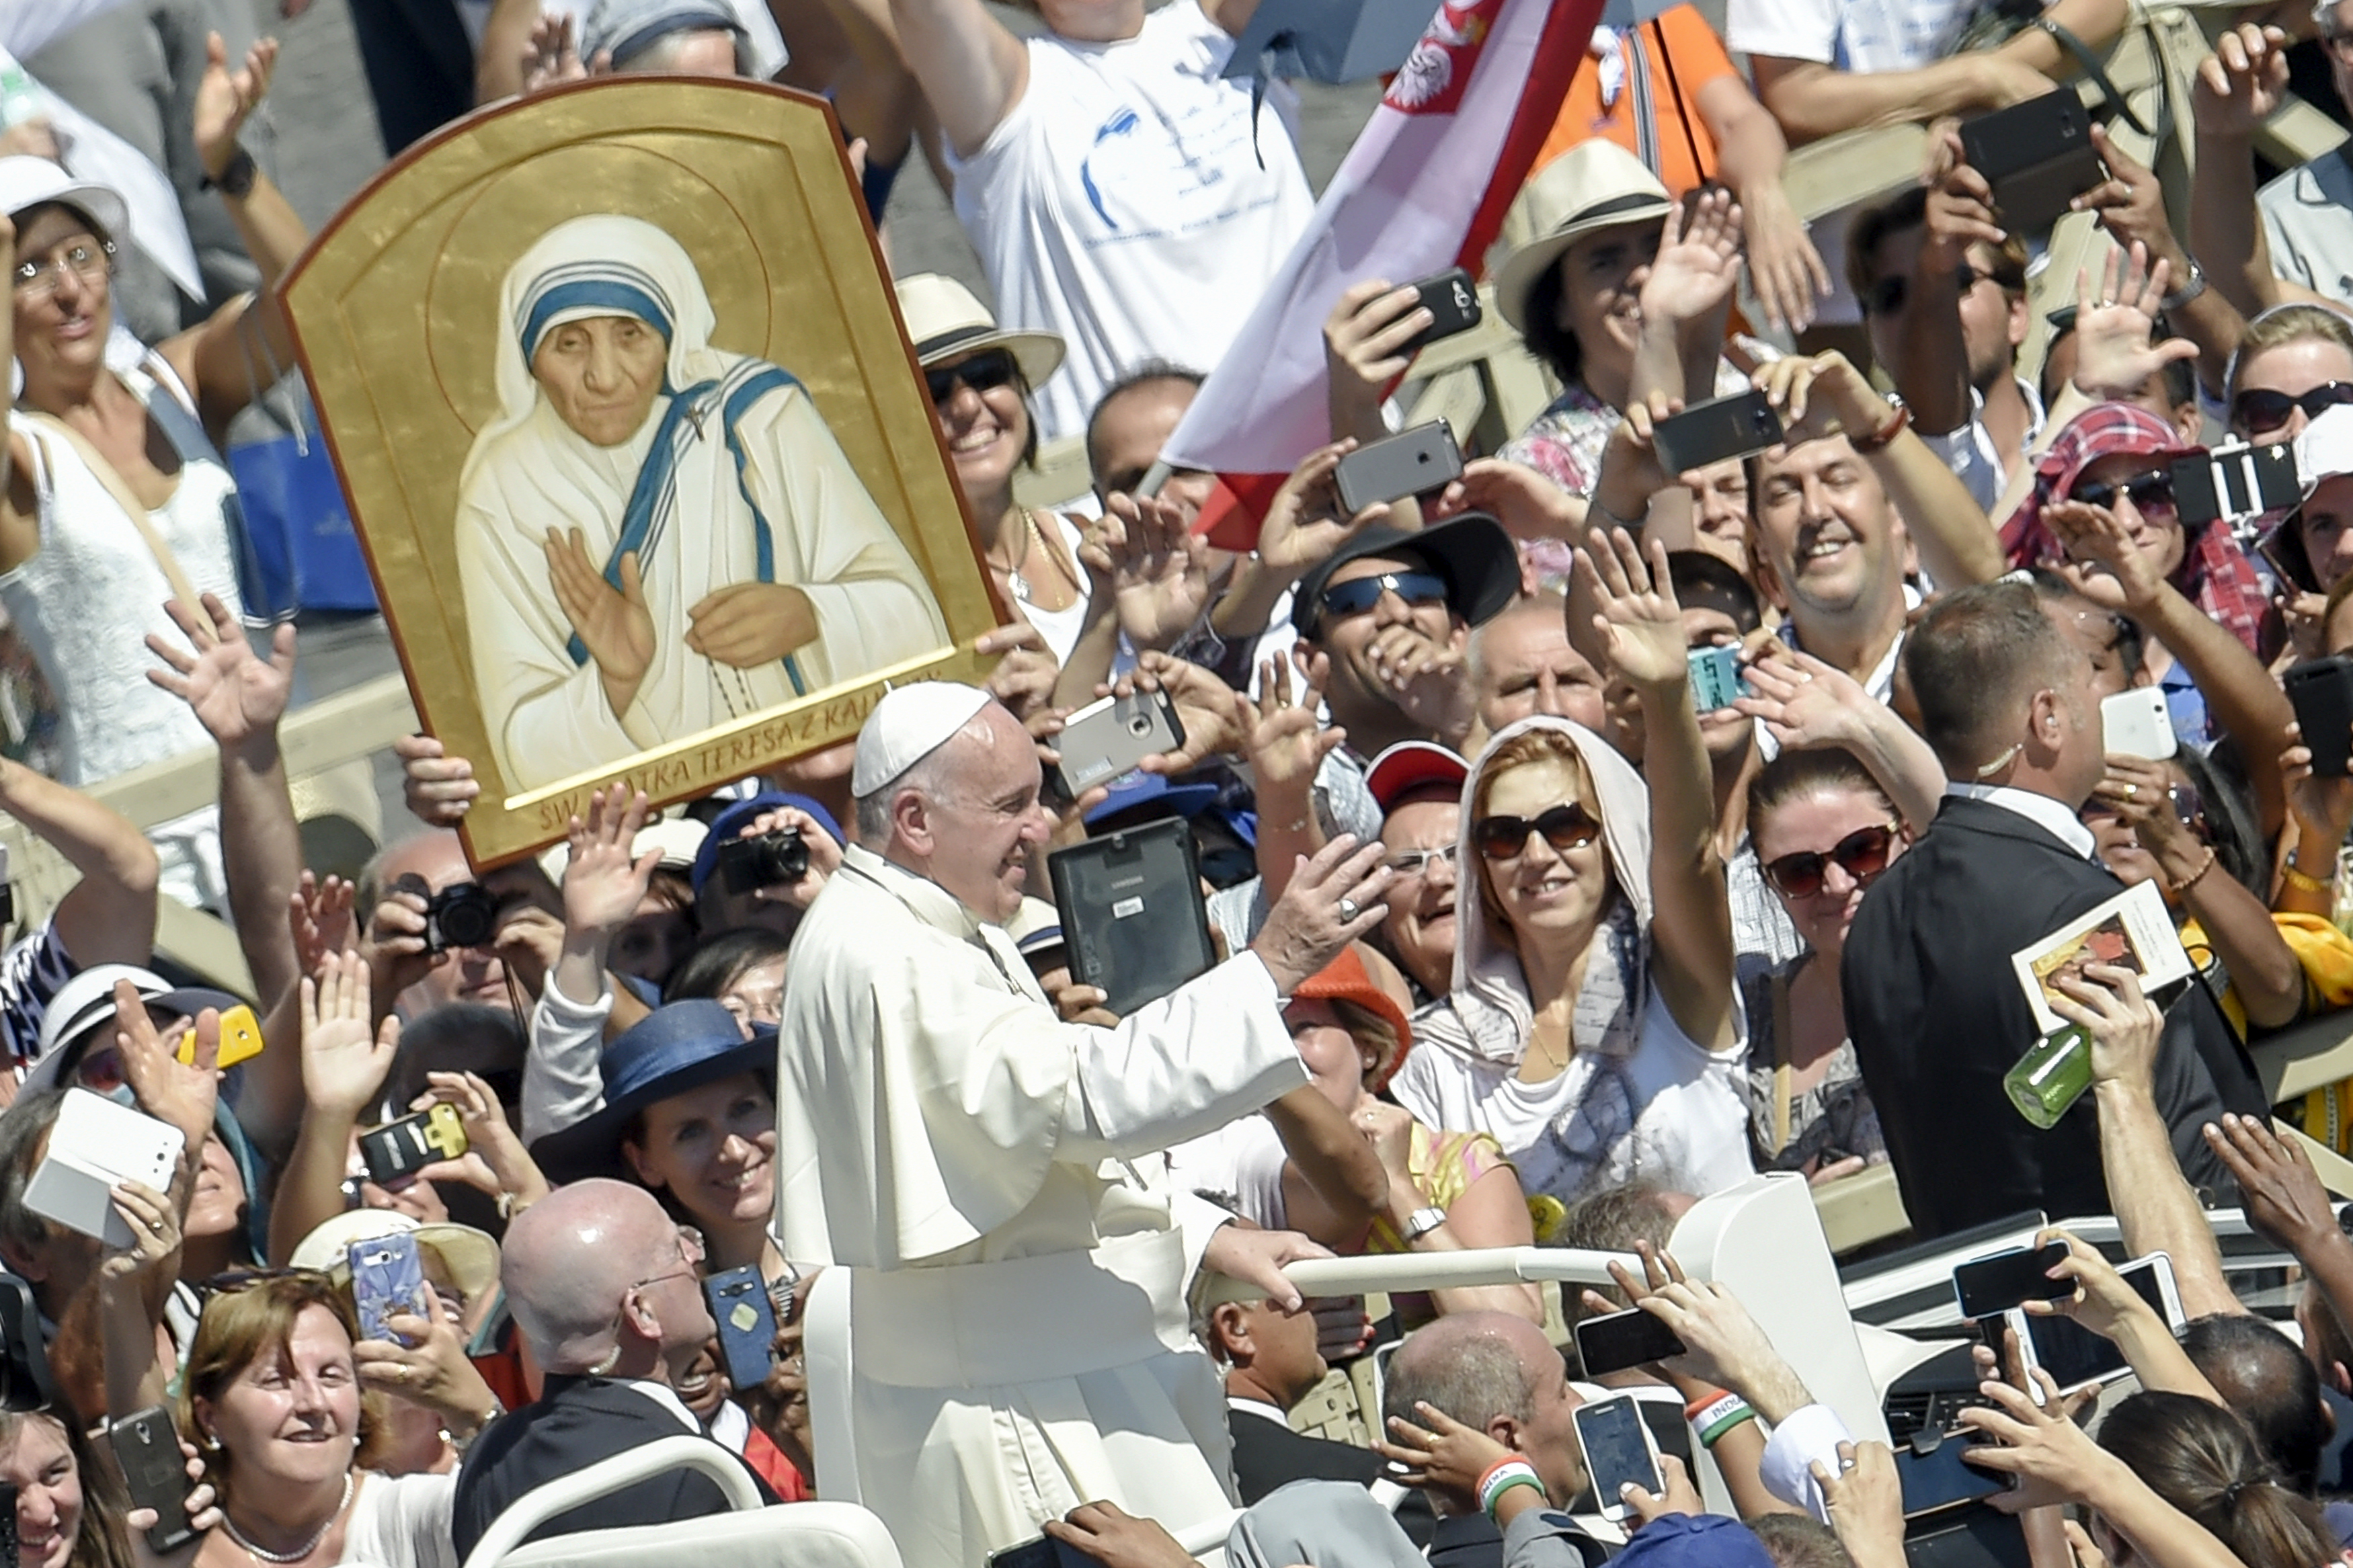 Pope Francis (C) waves to faithful as he leaves after a Holy Mass and the canonisation of Mother Teresa of Kolkata, on Saint Peter square in the Vatican, on September 4, 2016. Mother Teresa, the nun whose work with the dying and destitute of Kolkata made her a global icon of Christian charity, was made a saint on September 4, 2016. Her elevation to Roman Catholicism's celestial pantheon came in a canonisation mass in St Peter's square in the Vatican that was presided over by Pope Francis in the presence of 100,000 pilgrims. ANDREAS SOLARO / AFP